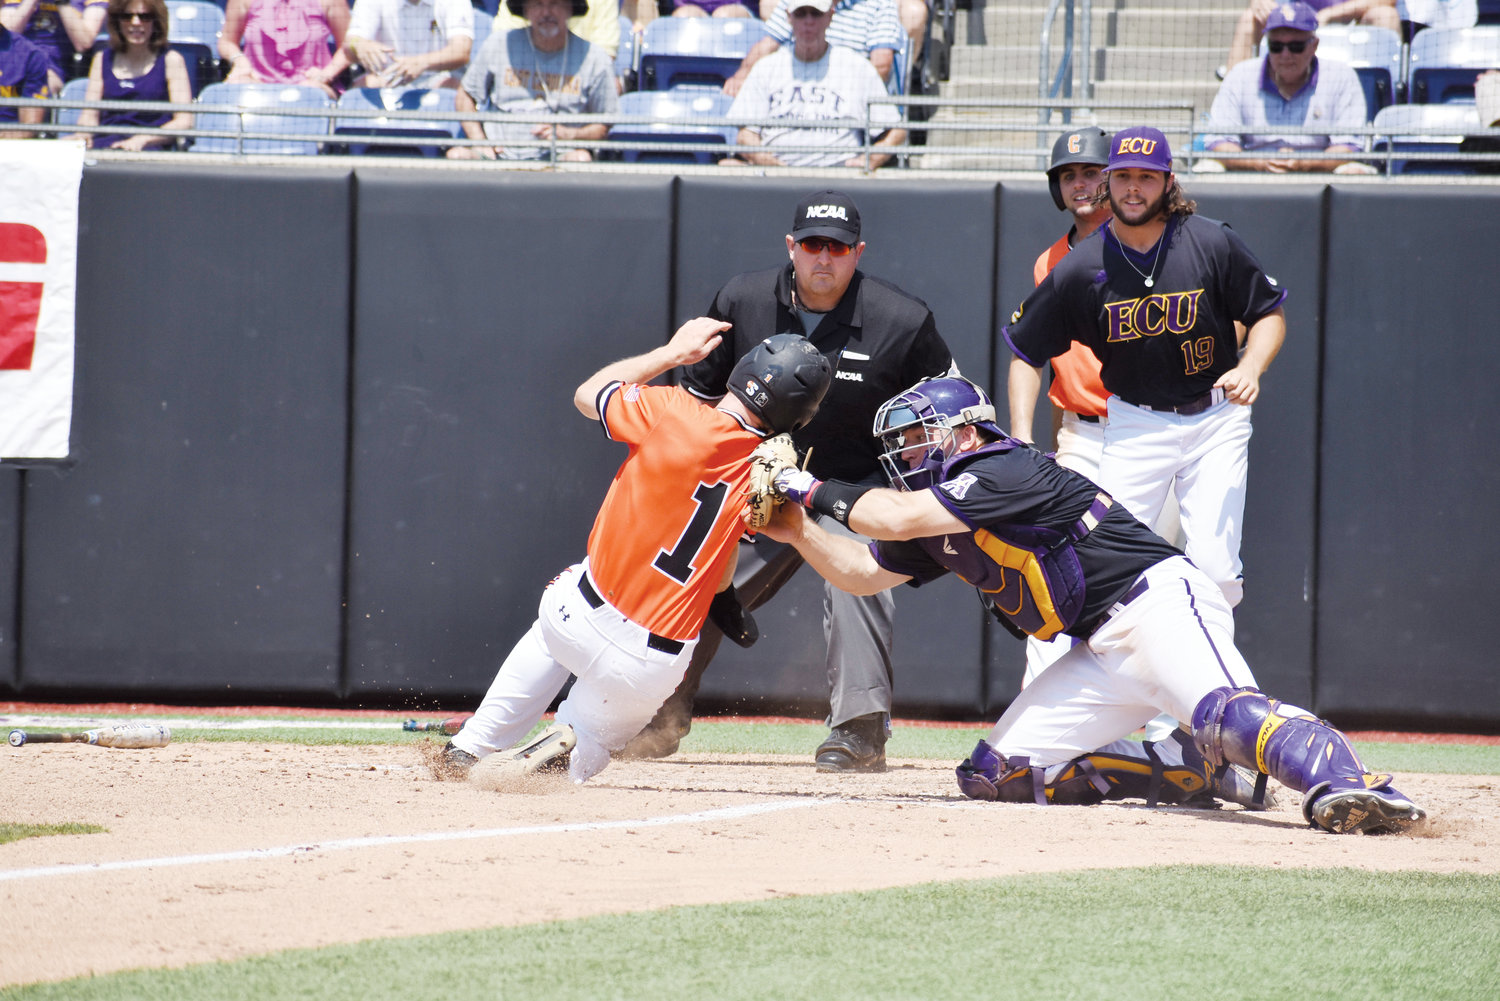 East Carolina catcher Jake Washer tags out Campbell's Grant Harris attempting to score at the plate in the fourth inning of Monday's first game at Clark-LeClair Stadium in Greenville. Washer was named Most Outstanding Player of the Greenville Regional.